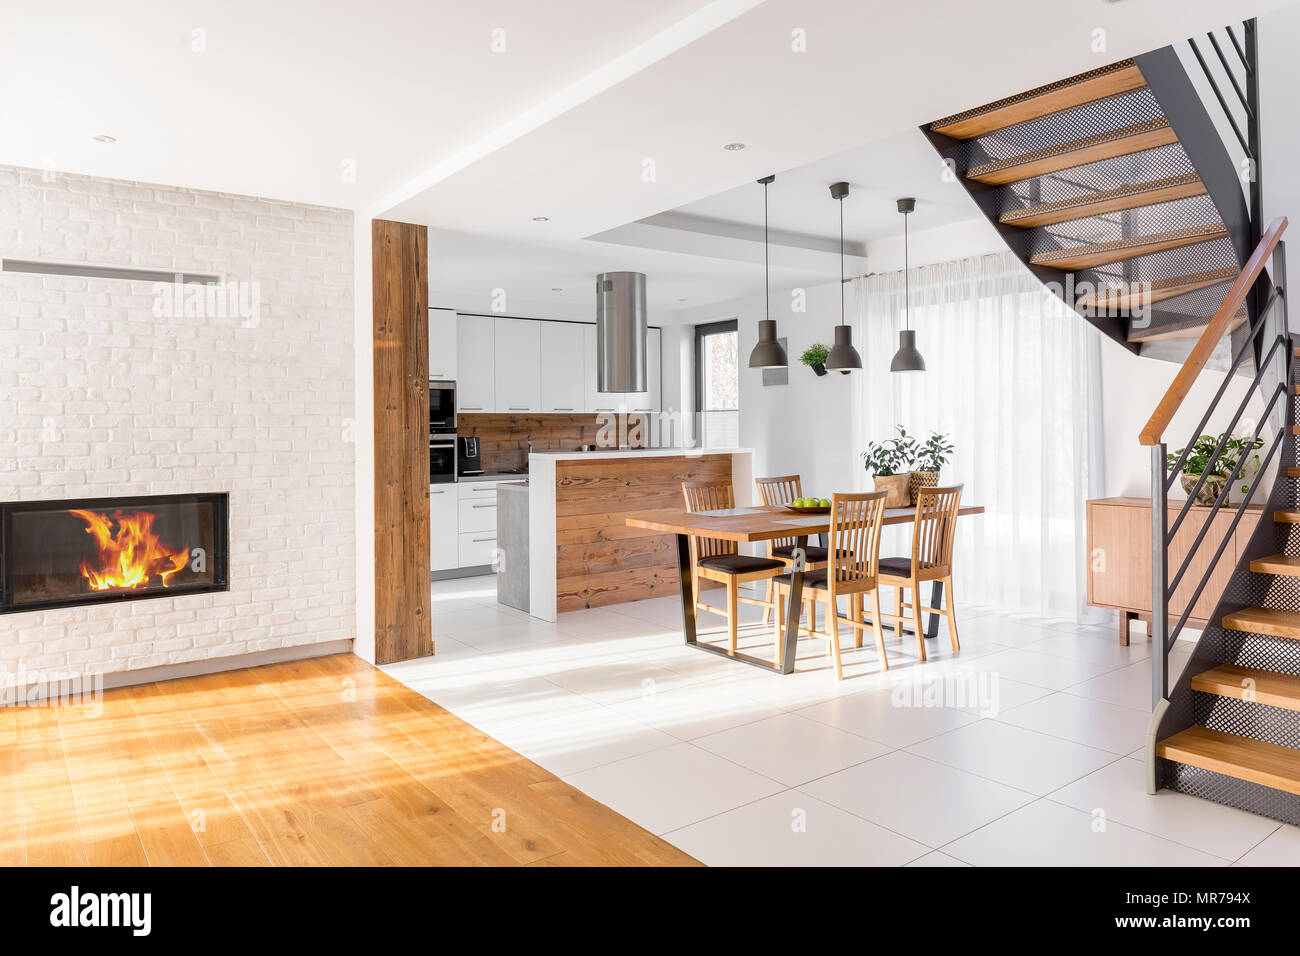 Modern luxury open plan apartment with stairs, communal table ...